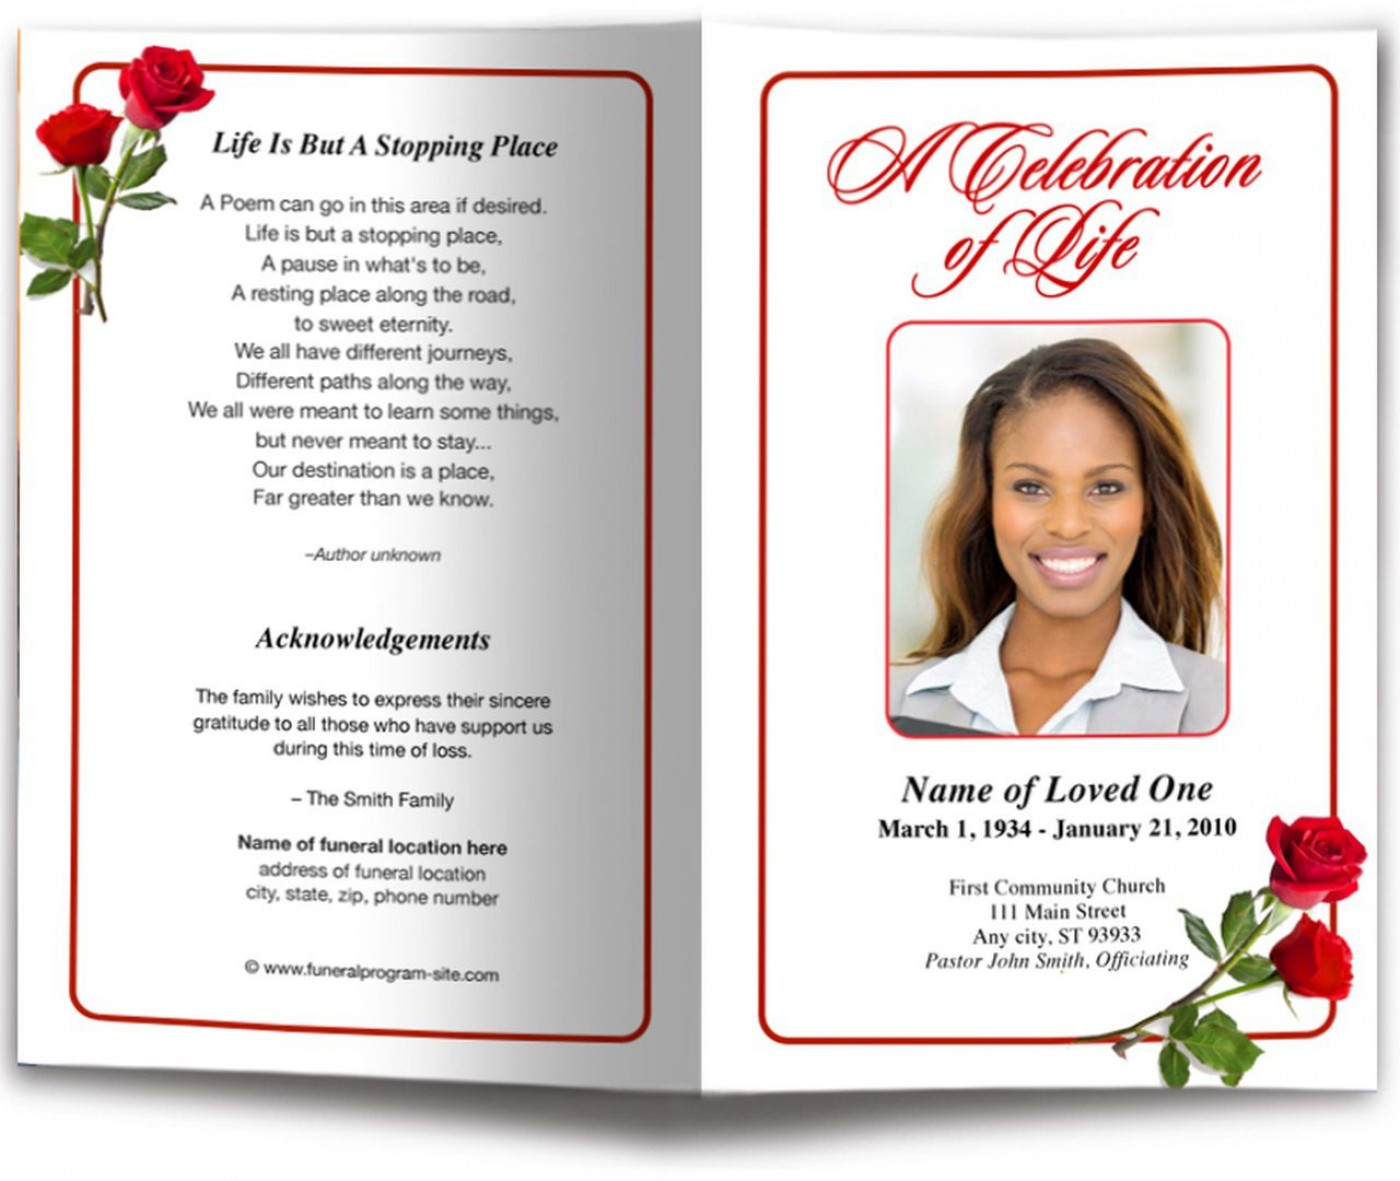 006 Incredible Funeral Program Template Free Inspiration  Printable Design1400